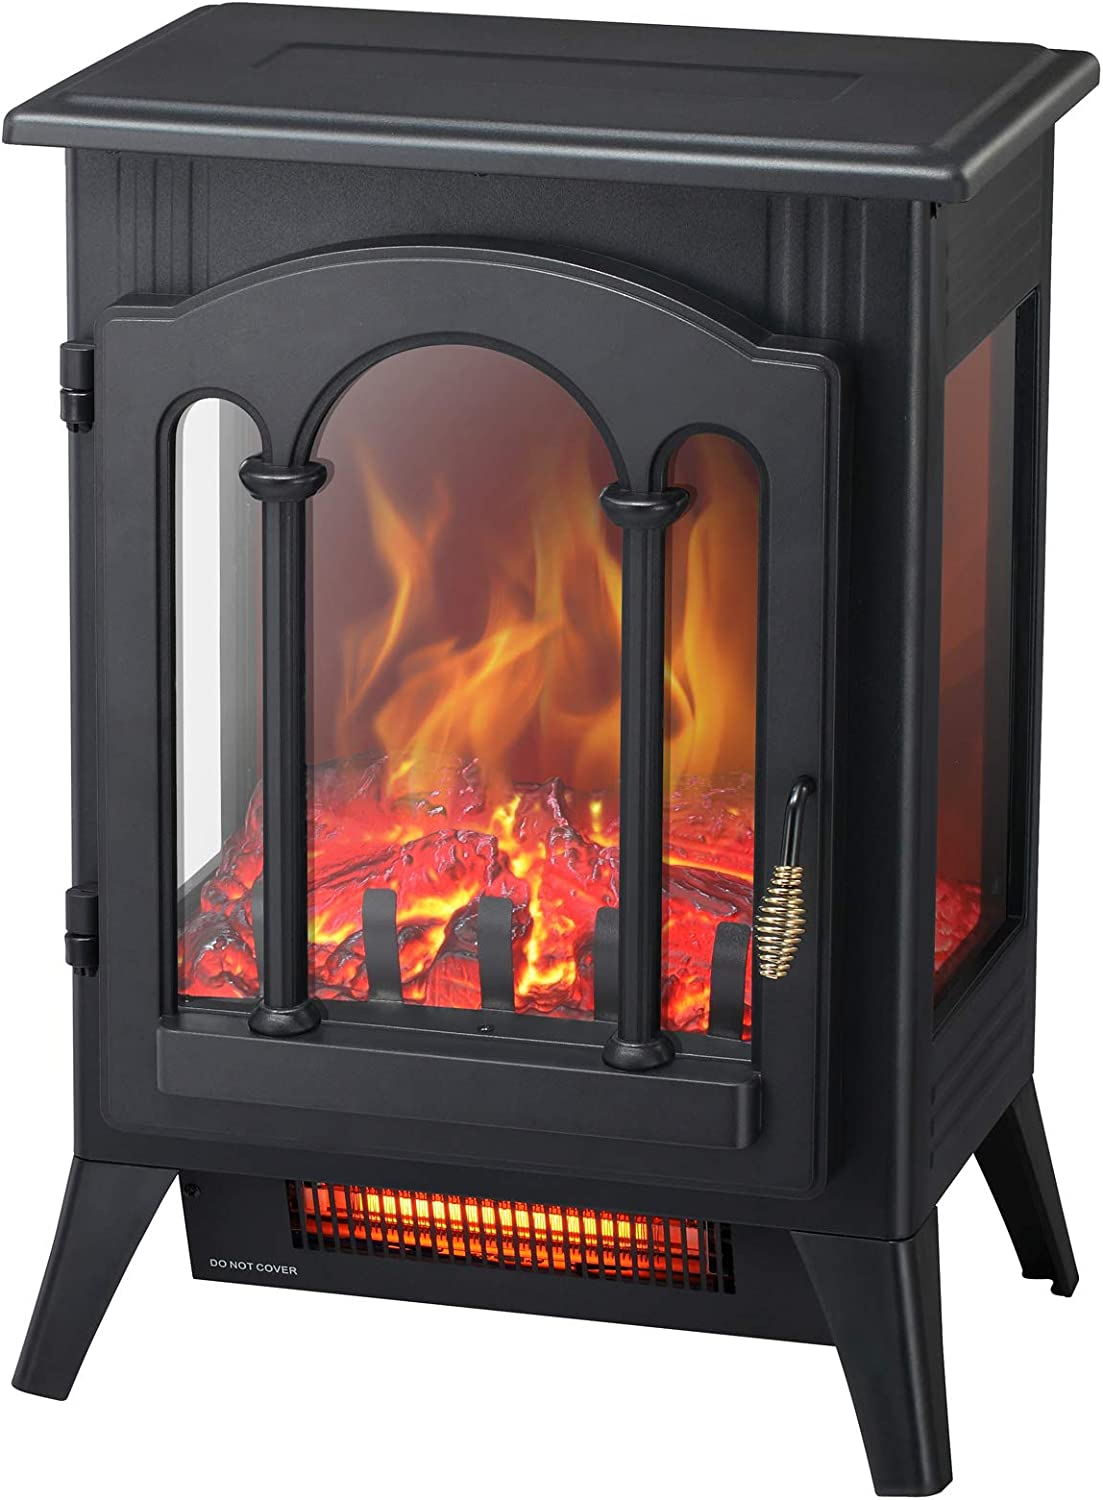 Kismile 3D Infrared Electric Fireplace Stove, Freestanding Fireplace Heater With Realistic Flame Effects, Portable Indoor Space HeaterWith Overheating Safety System, Adjustable Brightness (16.3 inch)